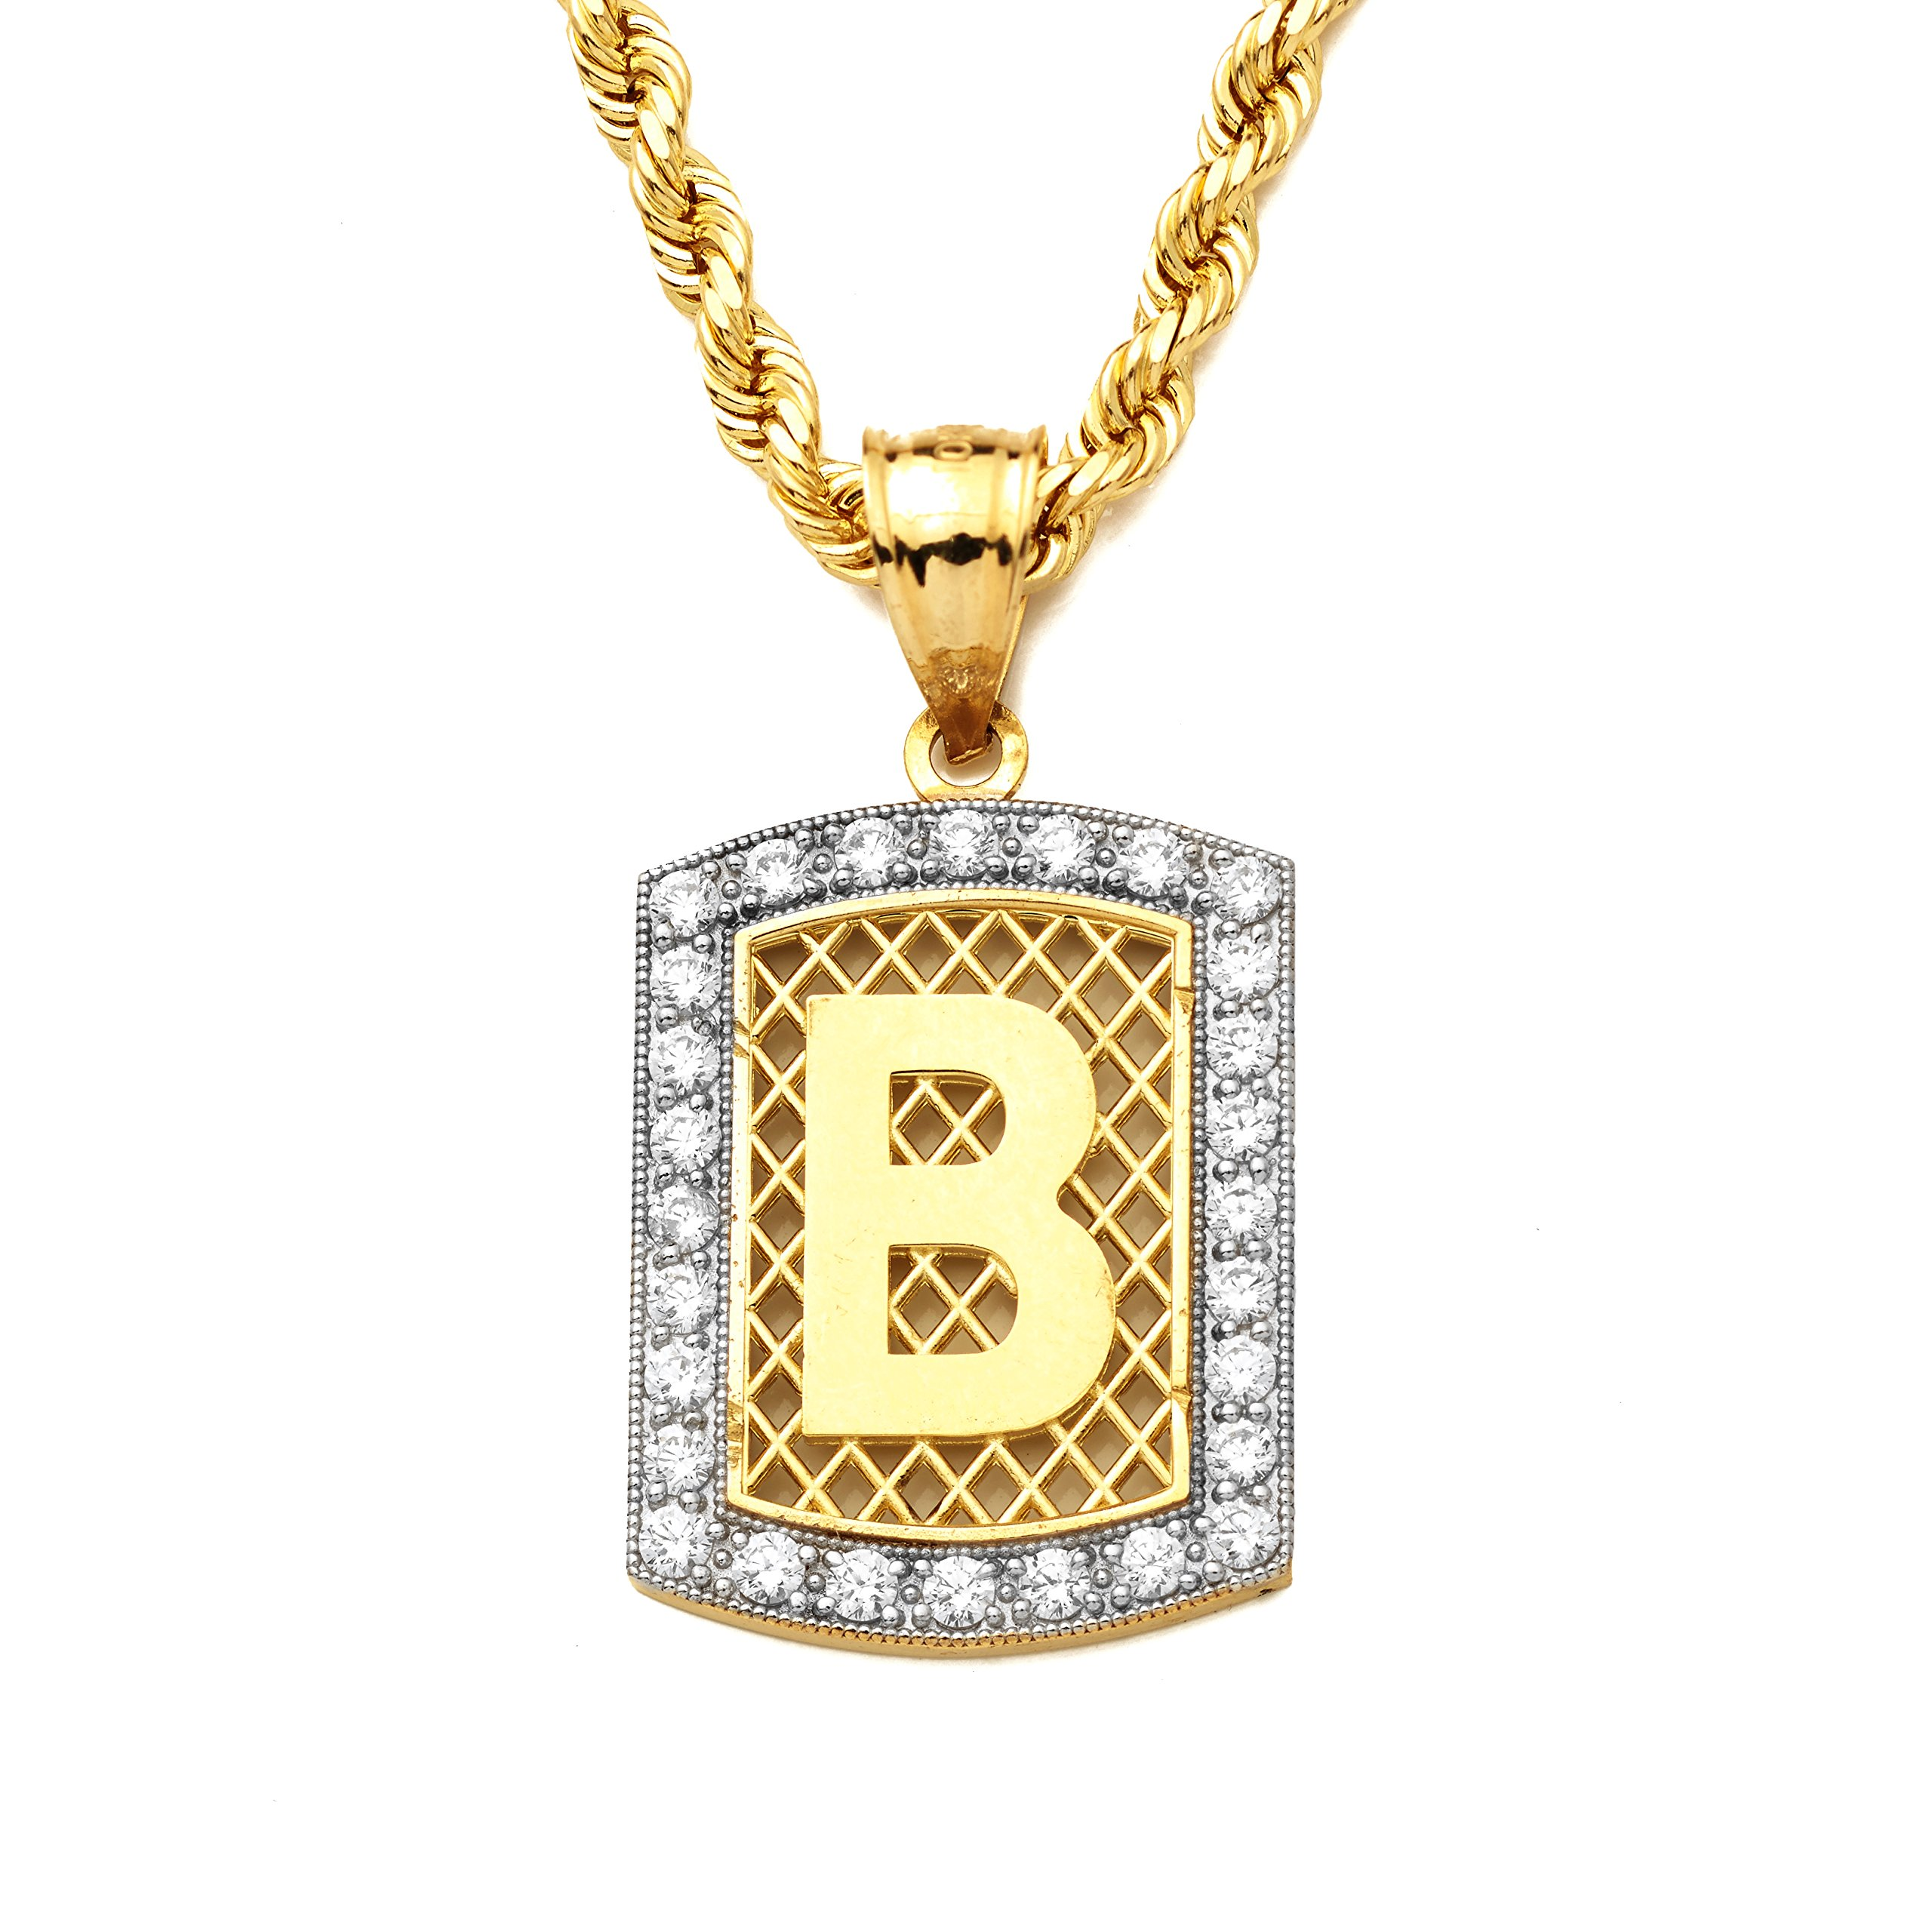 LoveBling 10K Yellow Gold Dog Tag Initials Charm Pendant w/ CZ Border (Available from A-Z) (B)